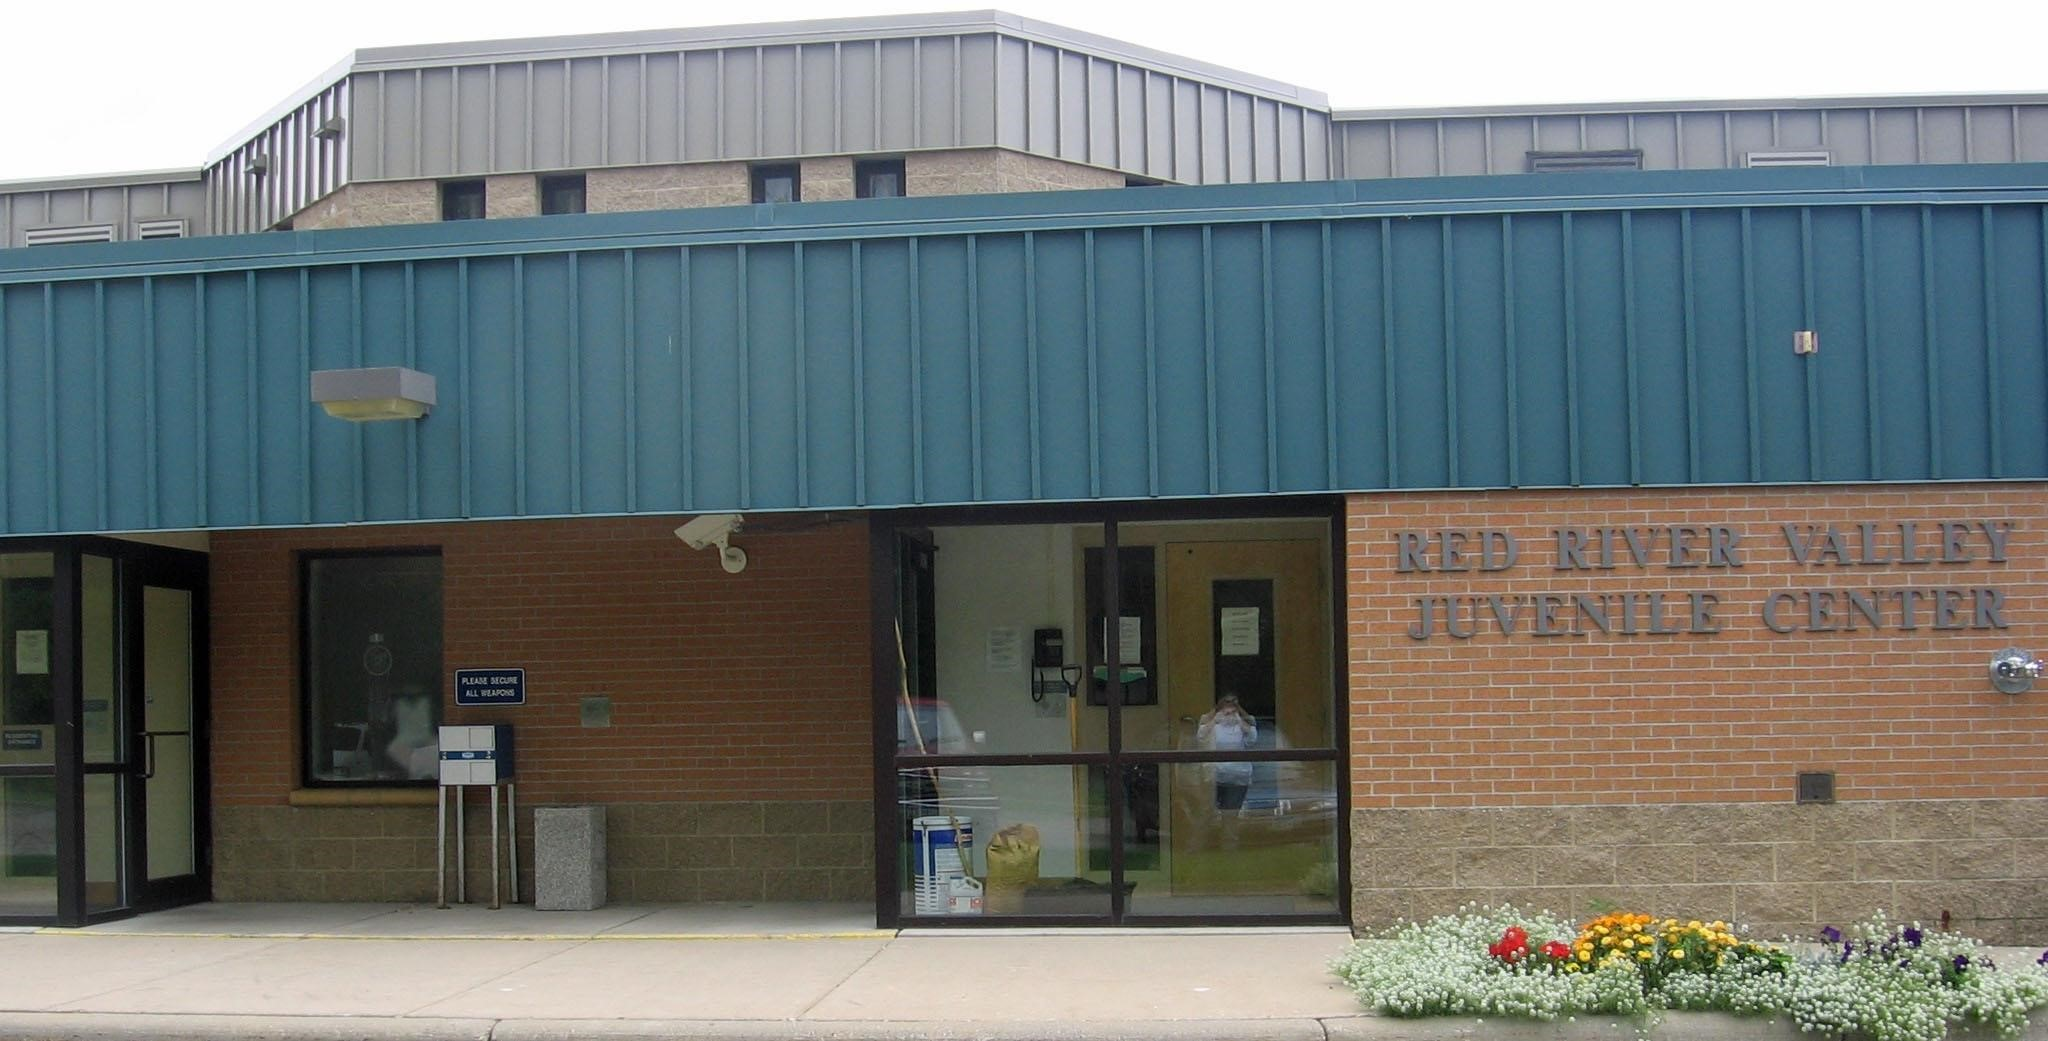 Red River Valley Juvenile Center Tri County Community Corrections